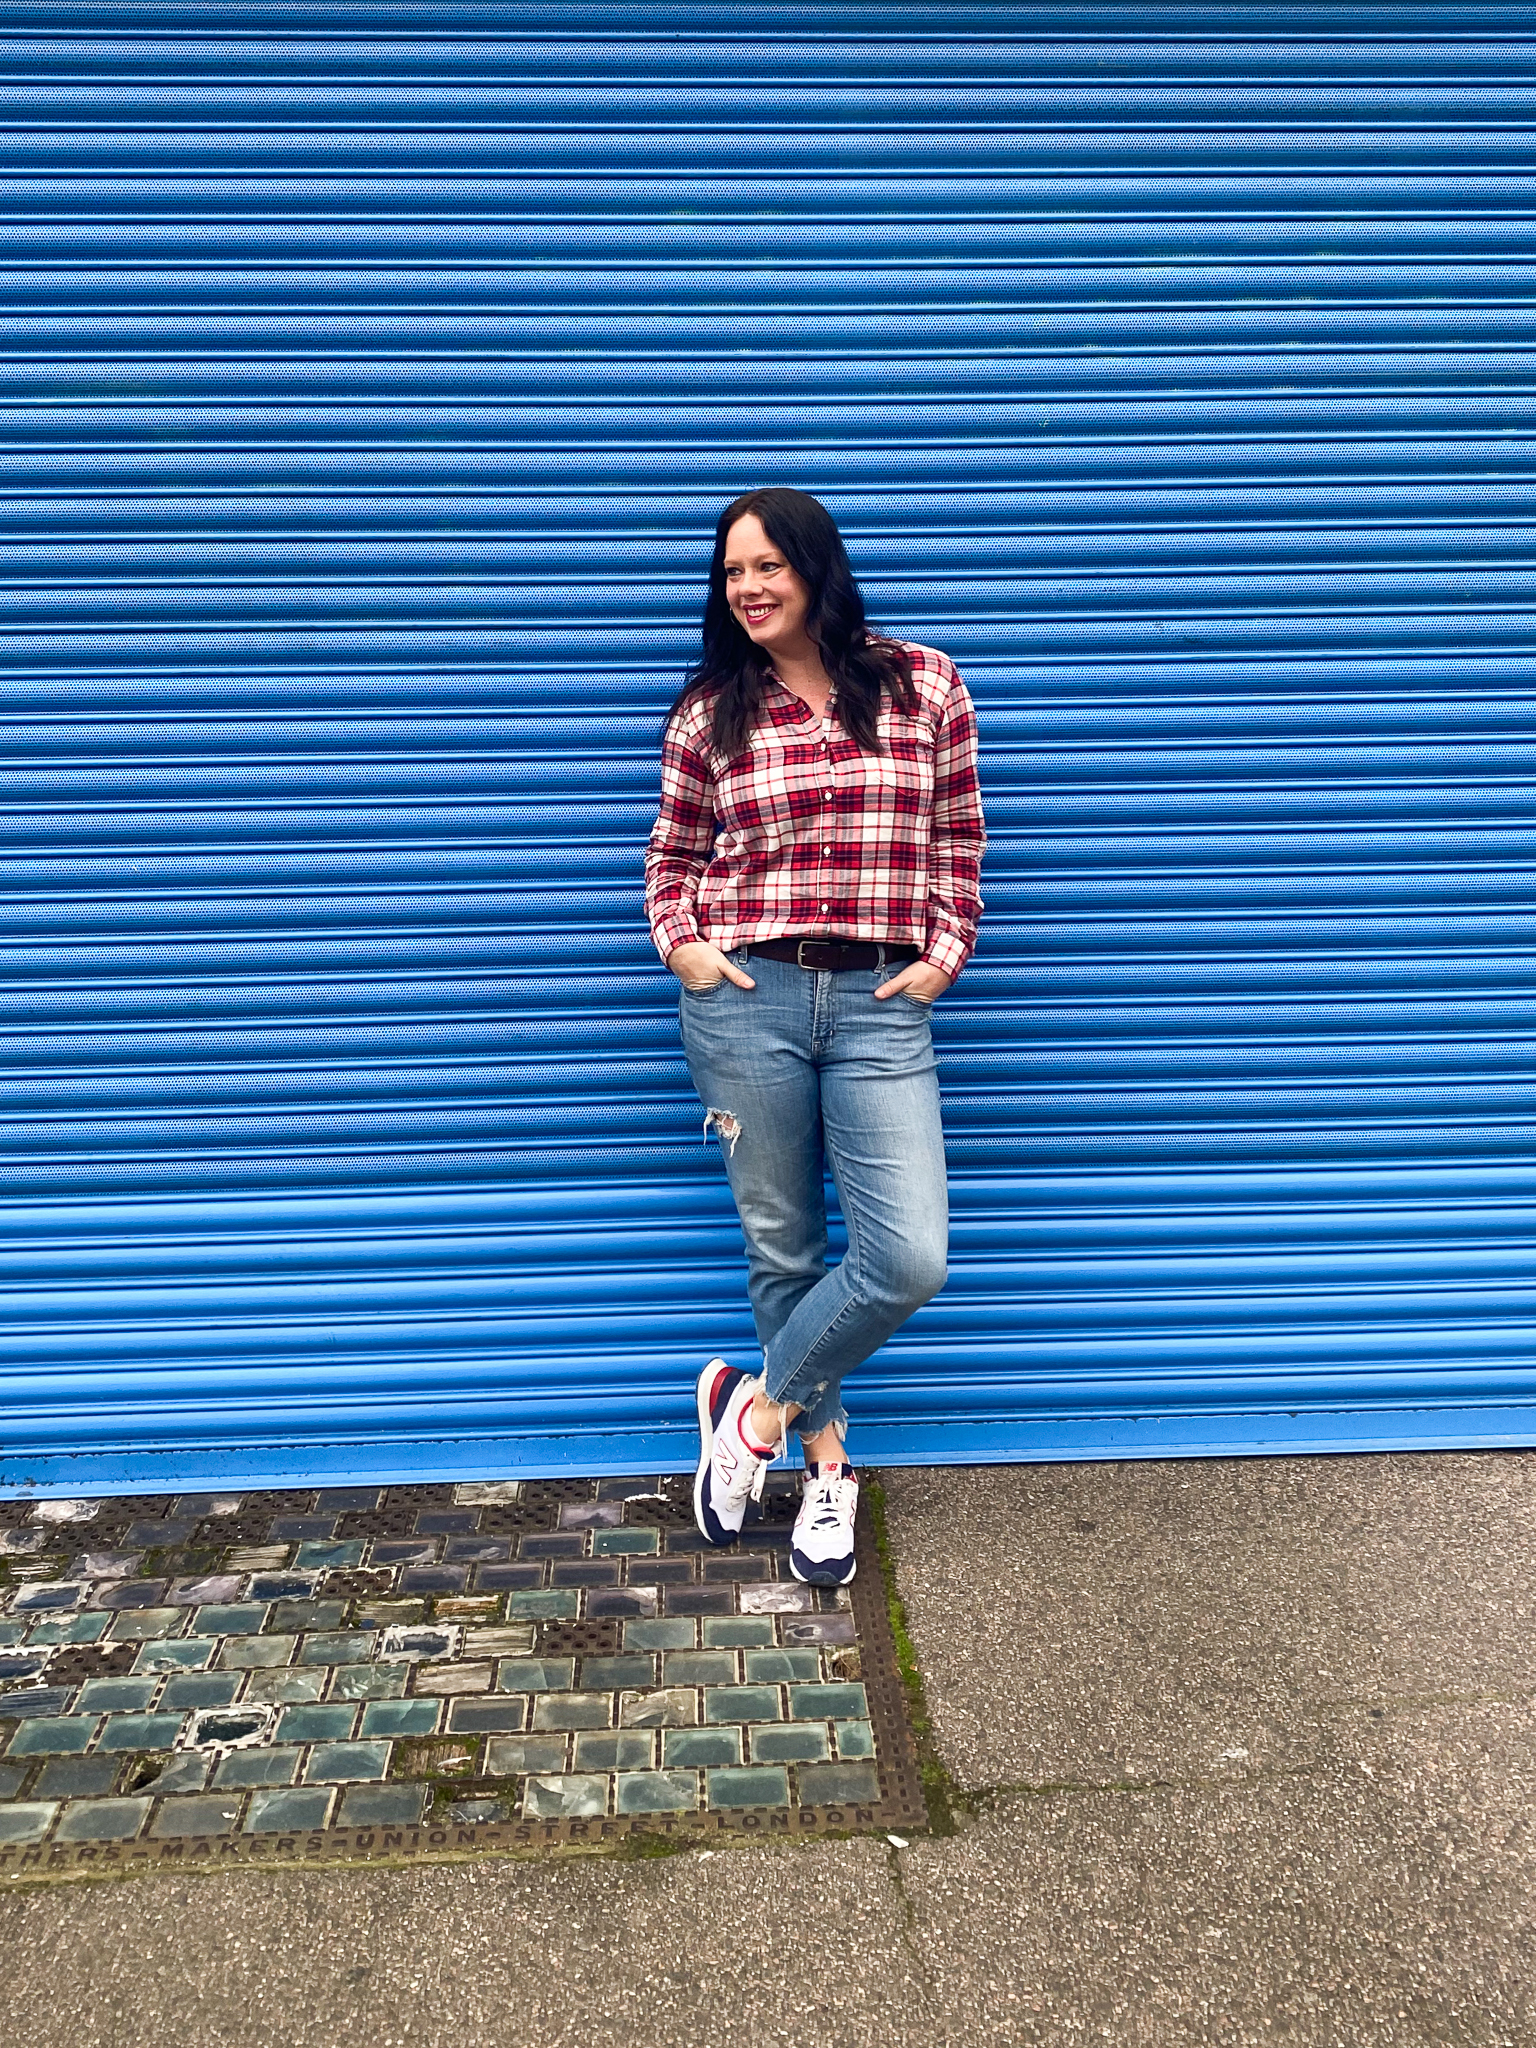 Red, white & blue plaid shirt with distressed jeans